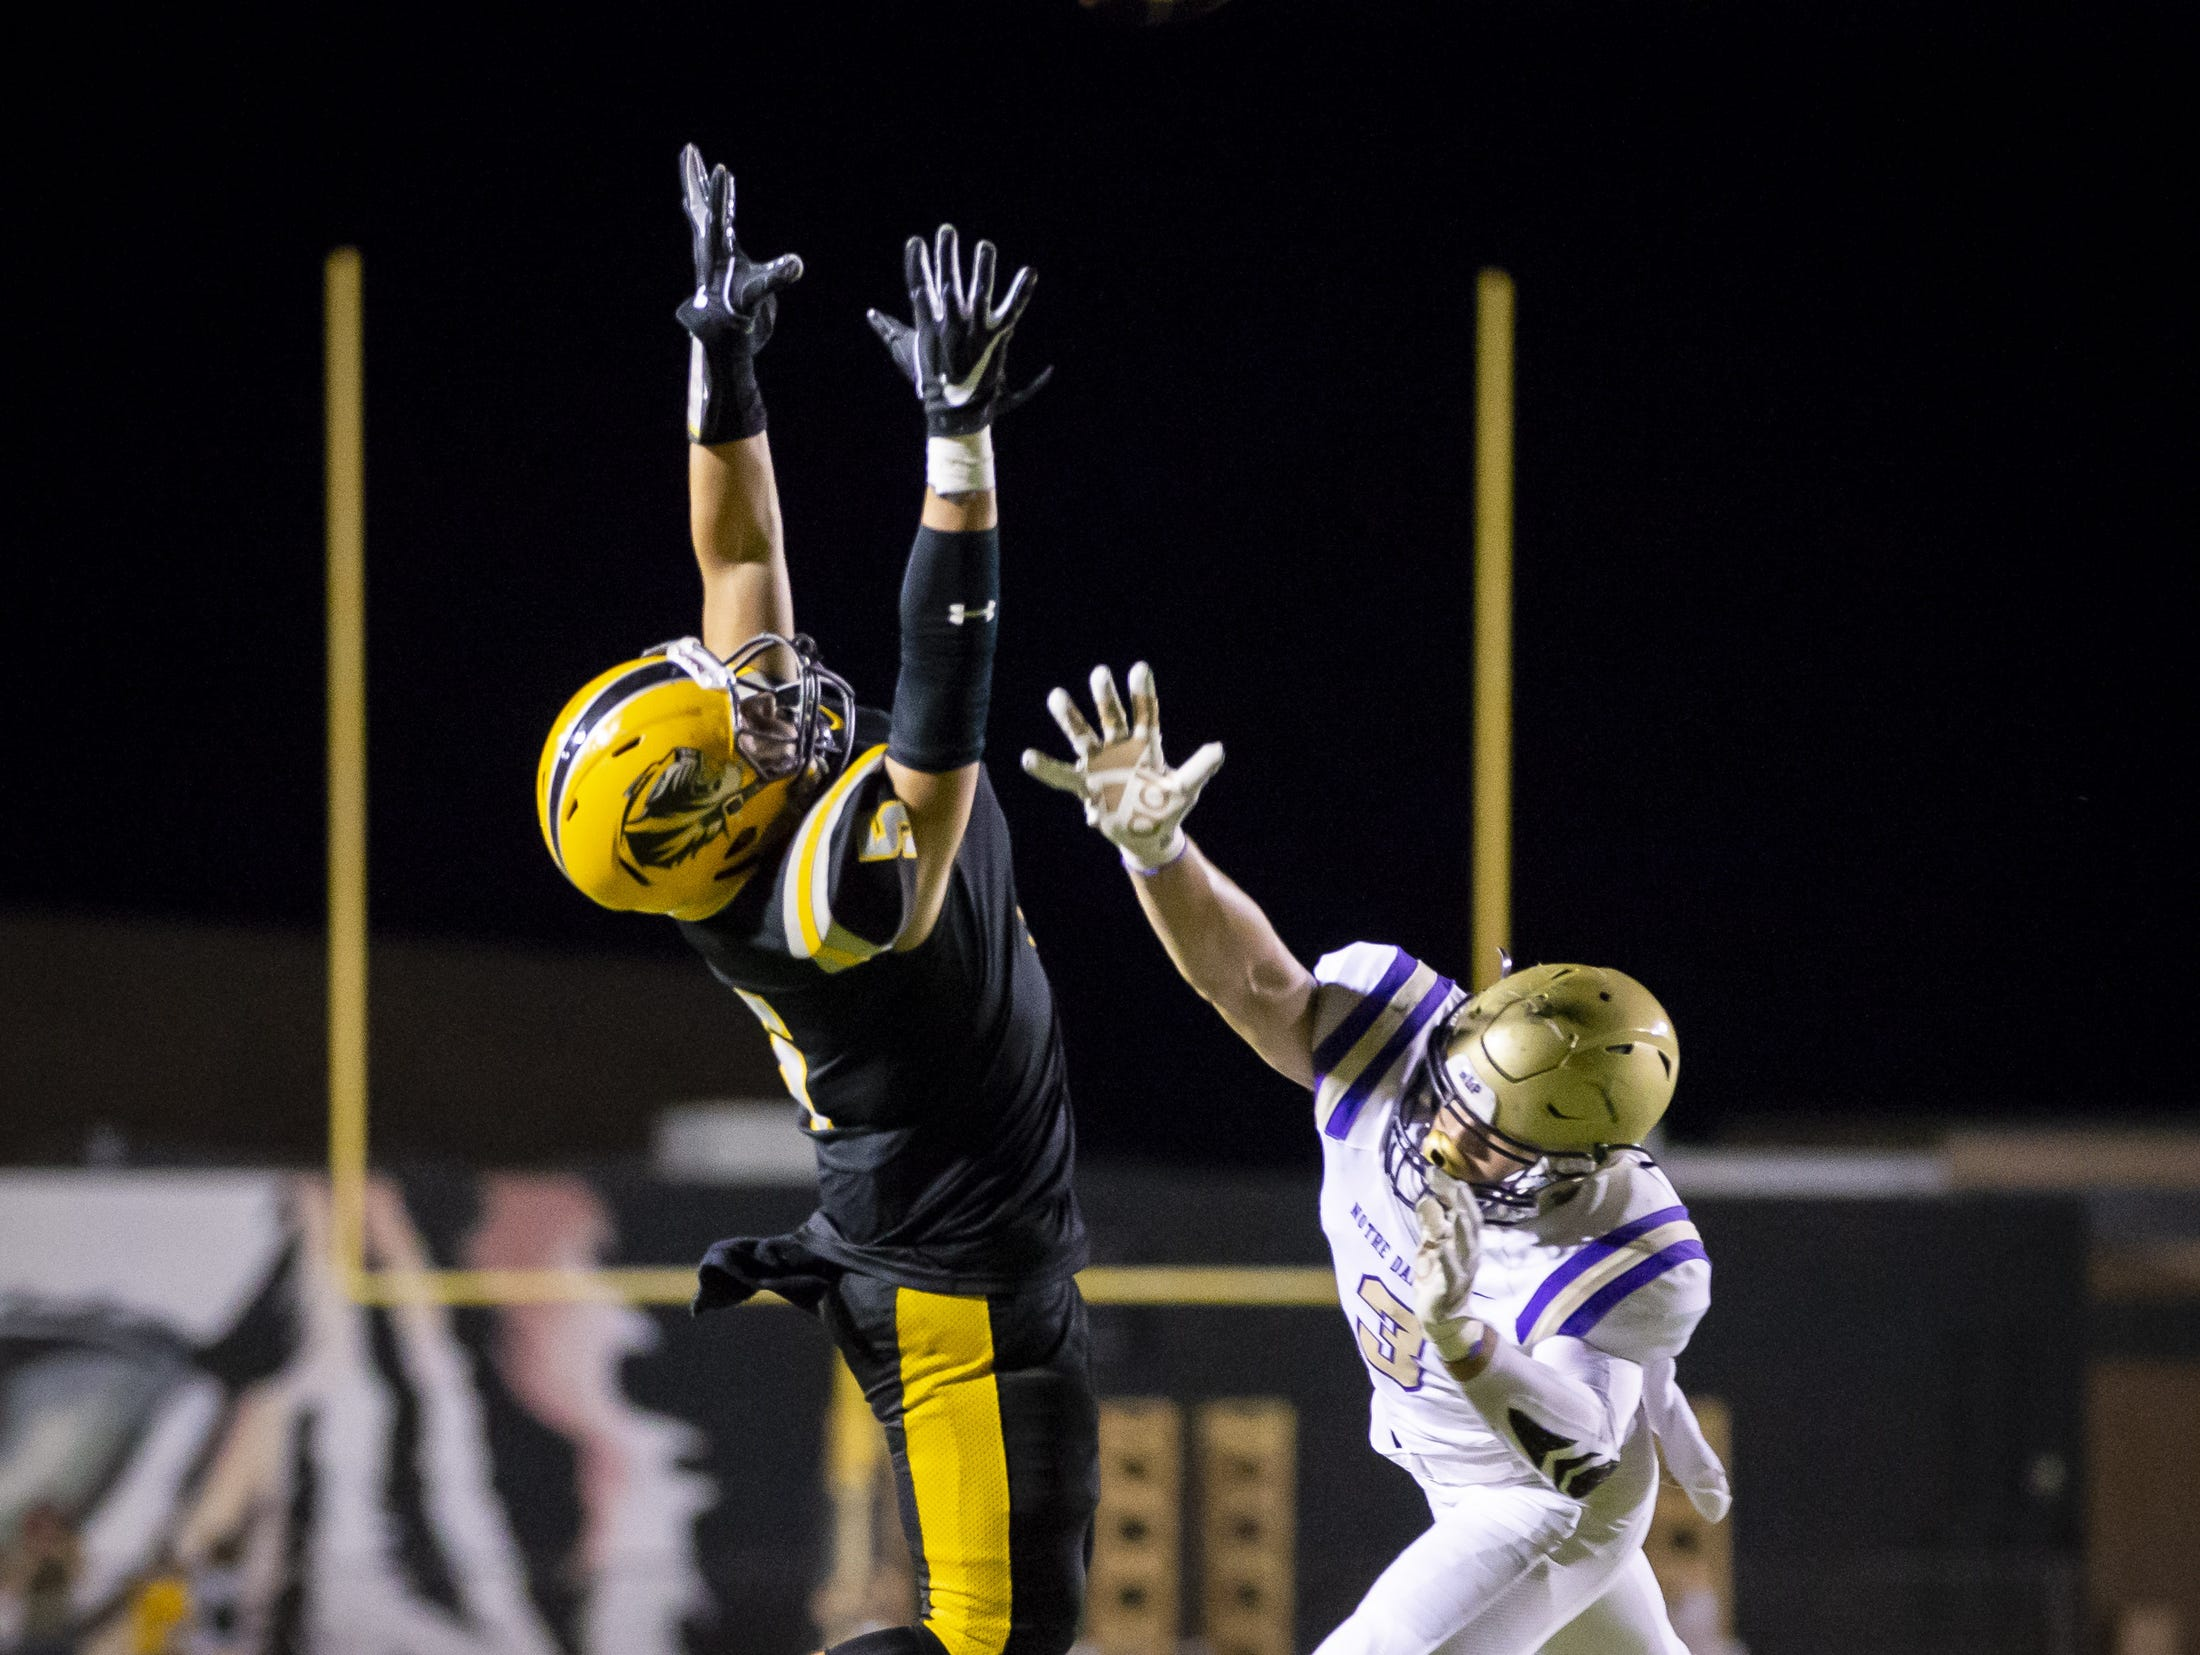 Junior running back Briggs Dupree (5) of the Gilbert Tigers attempts a catch against junior defensive back Connor Butt (3) of the Notre Dame Prep Saints at Gilbert High School on Friday, August 31, 2018 in Gilbert, Arizona.